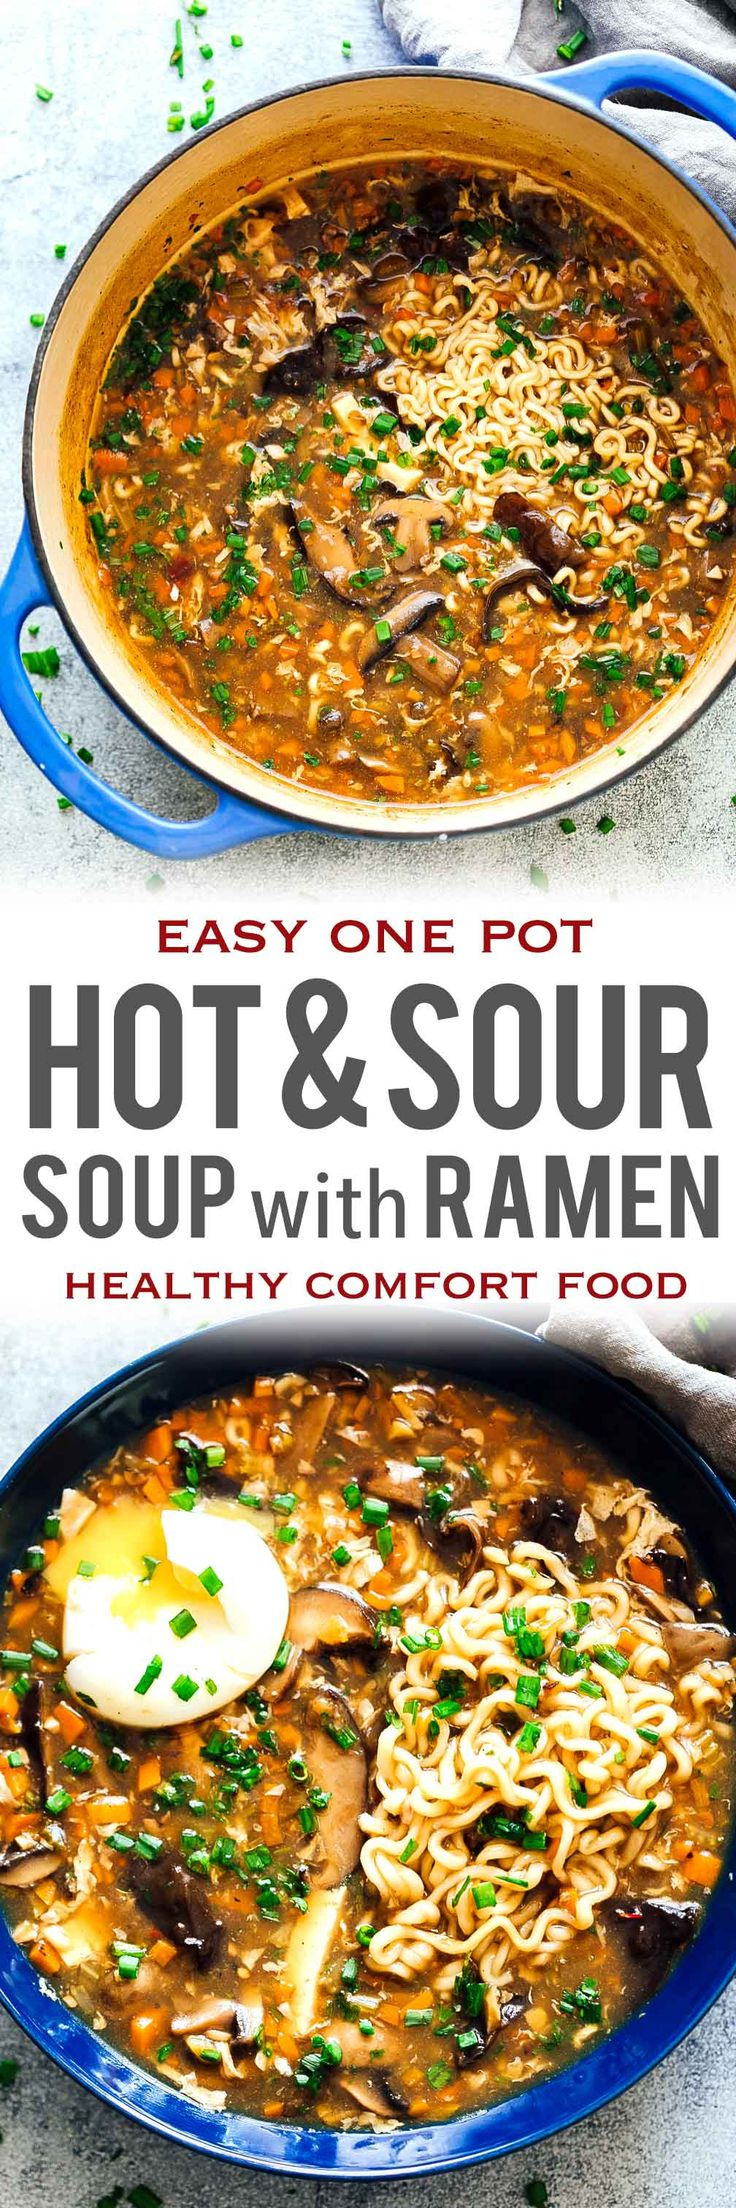 This Chinese Hot and Sour Soup with Ramen is the perfect comfort food that's ready in under 30 minutes! You'll love this authentic recipe - full of veggies, tofu, mushrooms and/or chicken, pork. Skip the ramen to make this one pot meal gluten free. via @my_foodstory